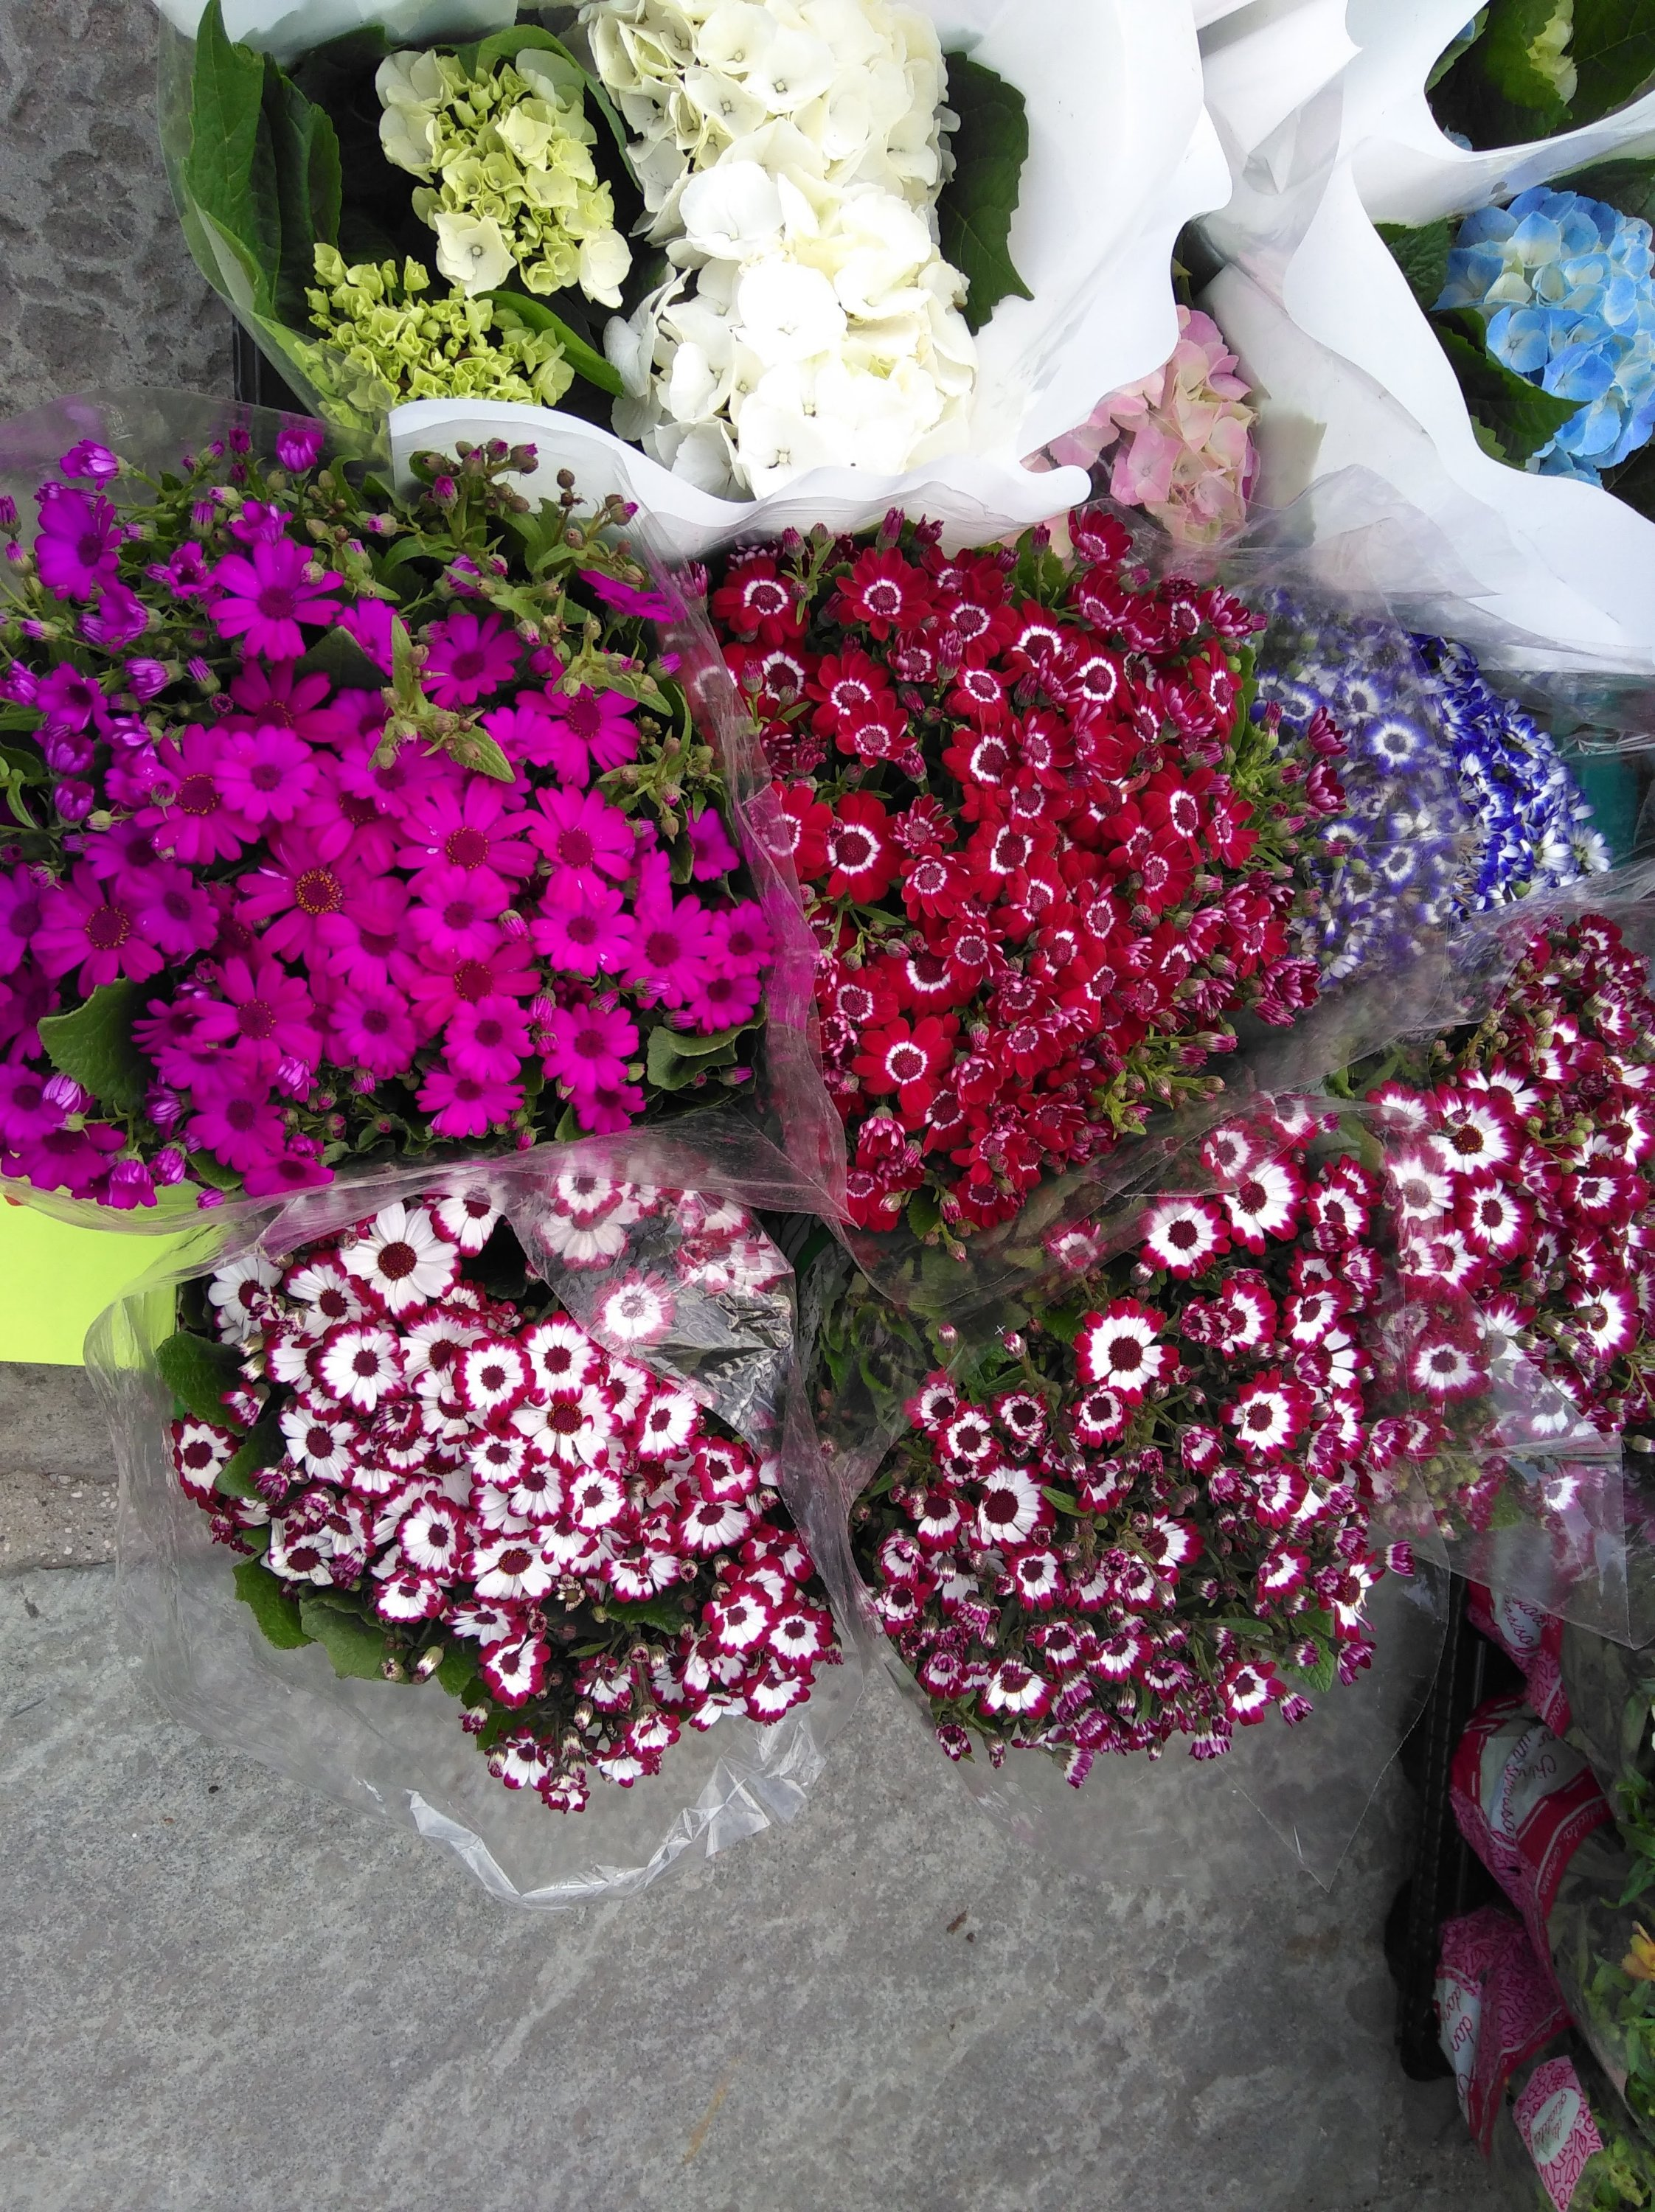 Tamara Jare Slovenian artist photography flower bouquets in white, red, pink and blue color on street market contemporary street photo Slovene art